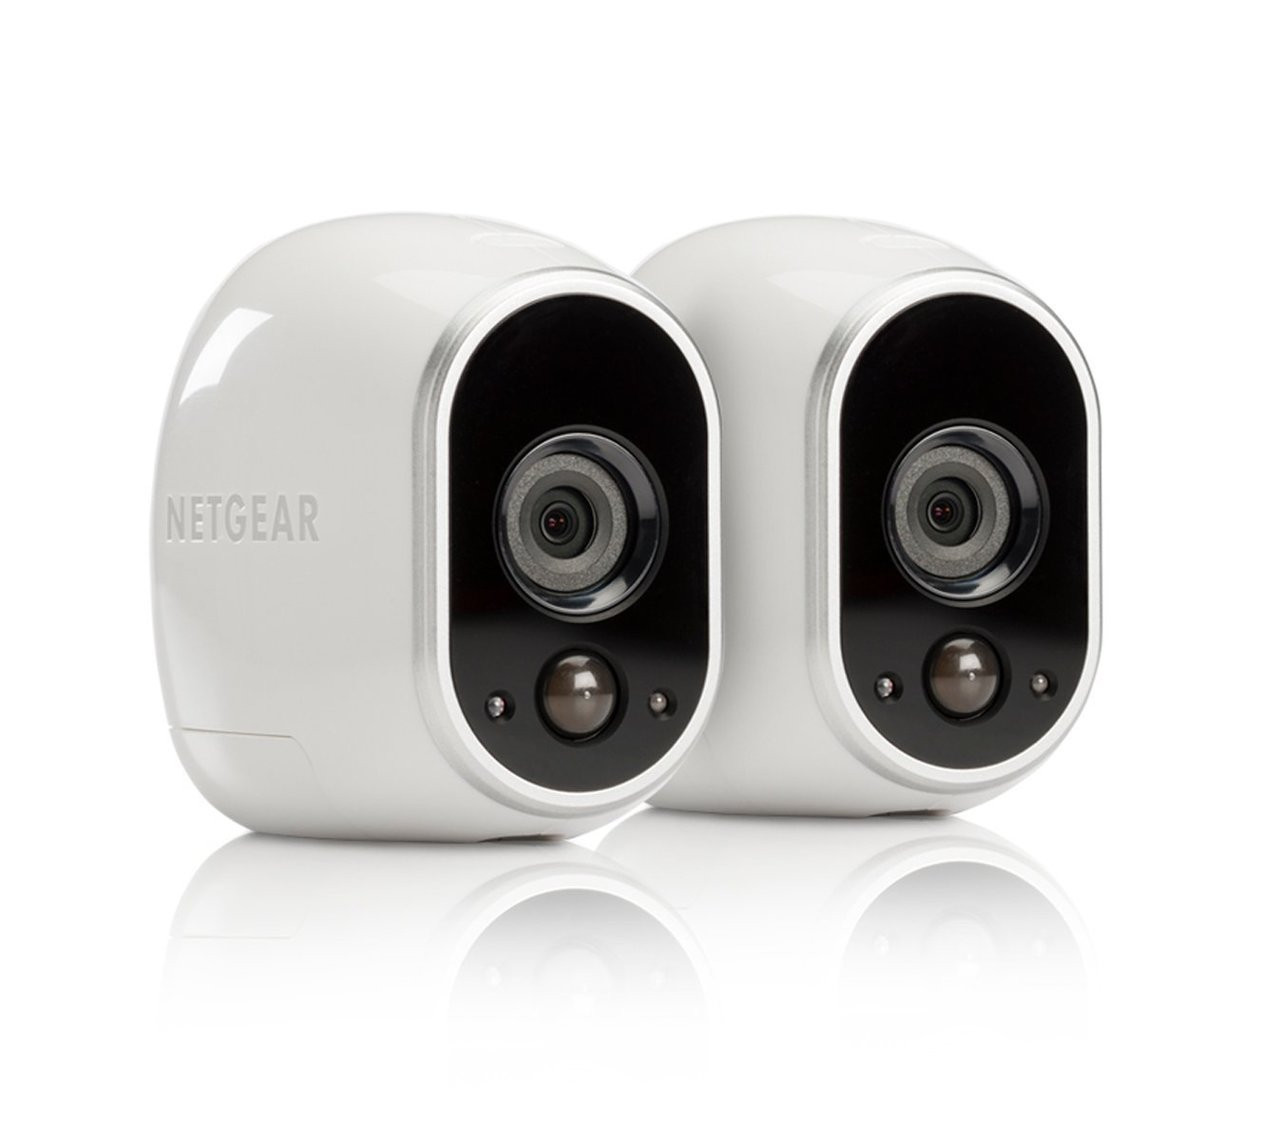 ArloVMC3030-100NAR-2pack NETGEAR Security Camera, Add-on Wire-Free HD Camera [Base Station not included], Indoor/Outdoor, Night Vision and Works with Alexa - Certified Refurbished